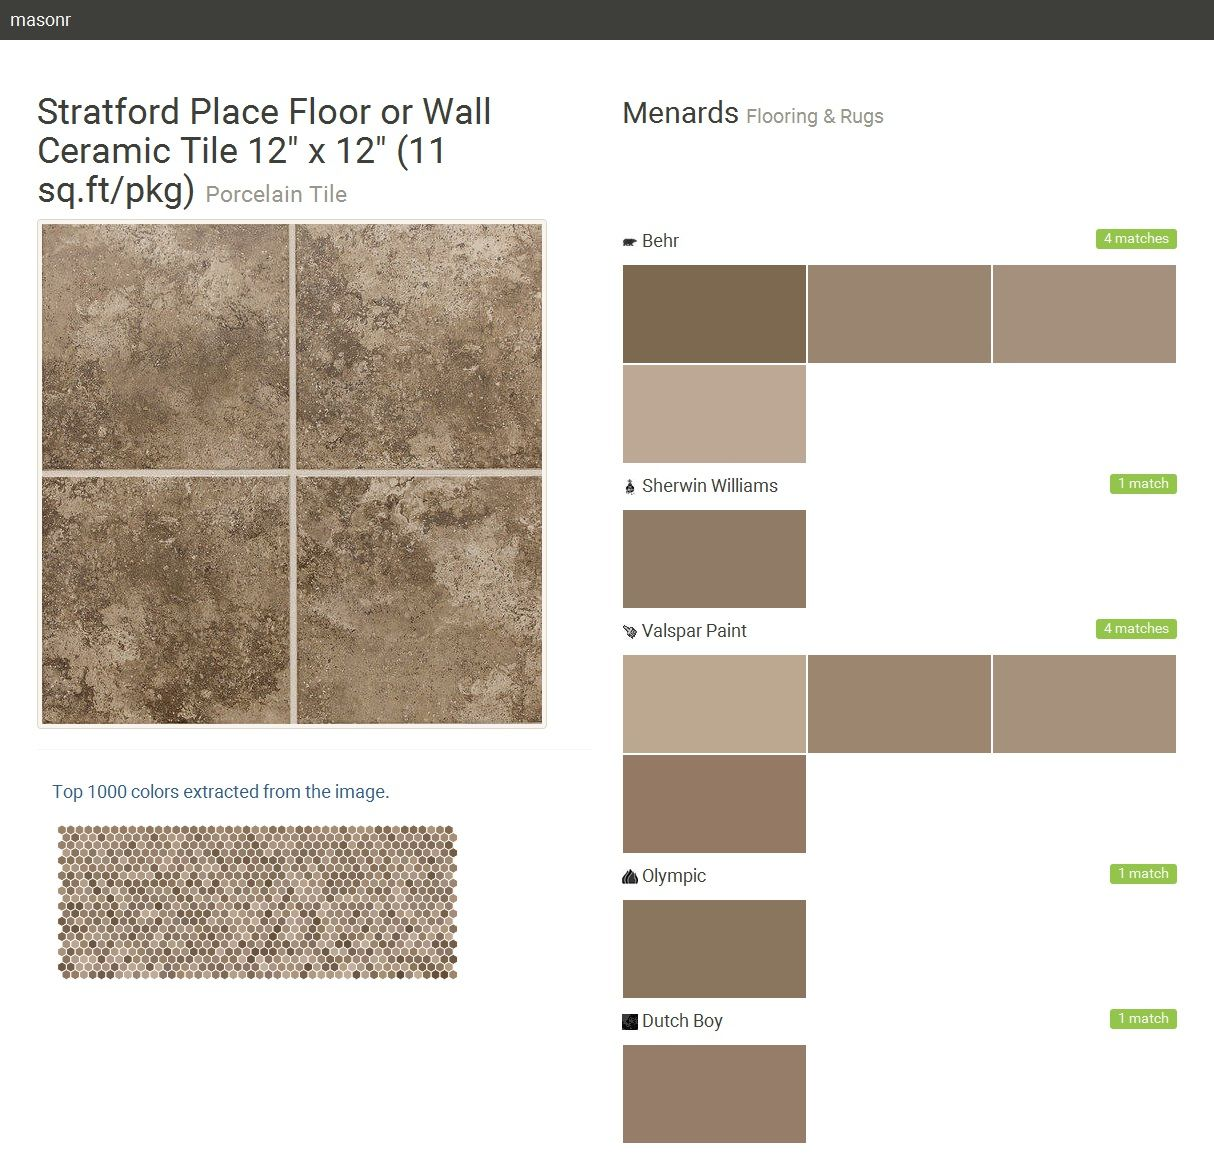 Stratford place floor or wall ceramic tile 12 x 12 11 sqftpkg stratford place floor or wall ceramic tile 12 x 12 11 sq dailygadgetfo Images